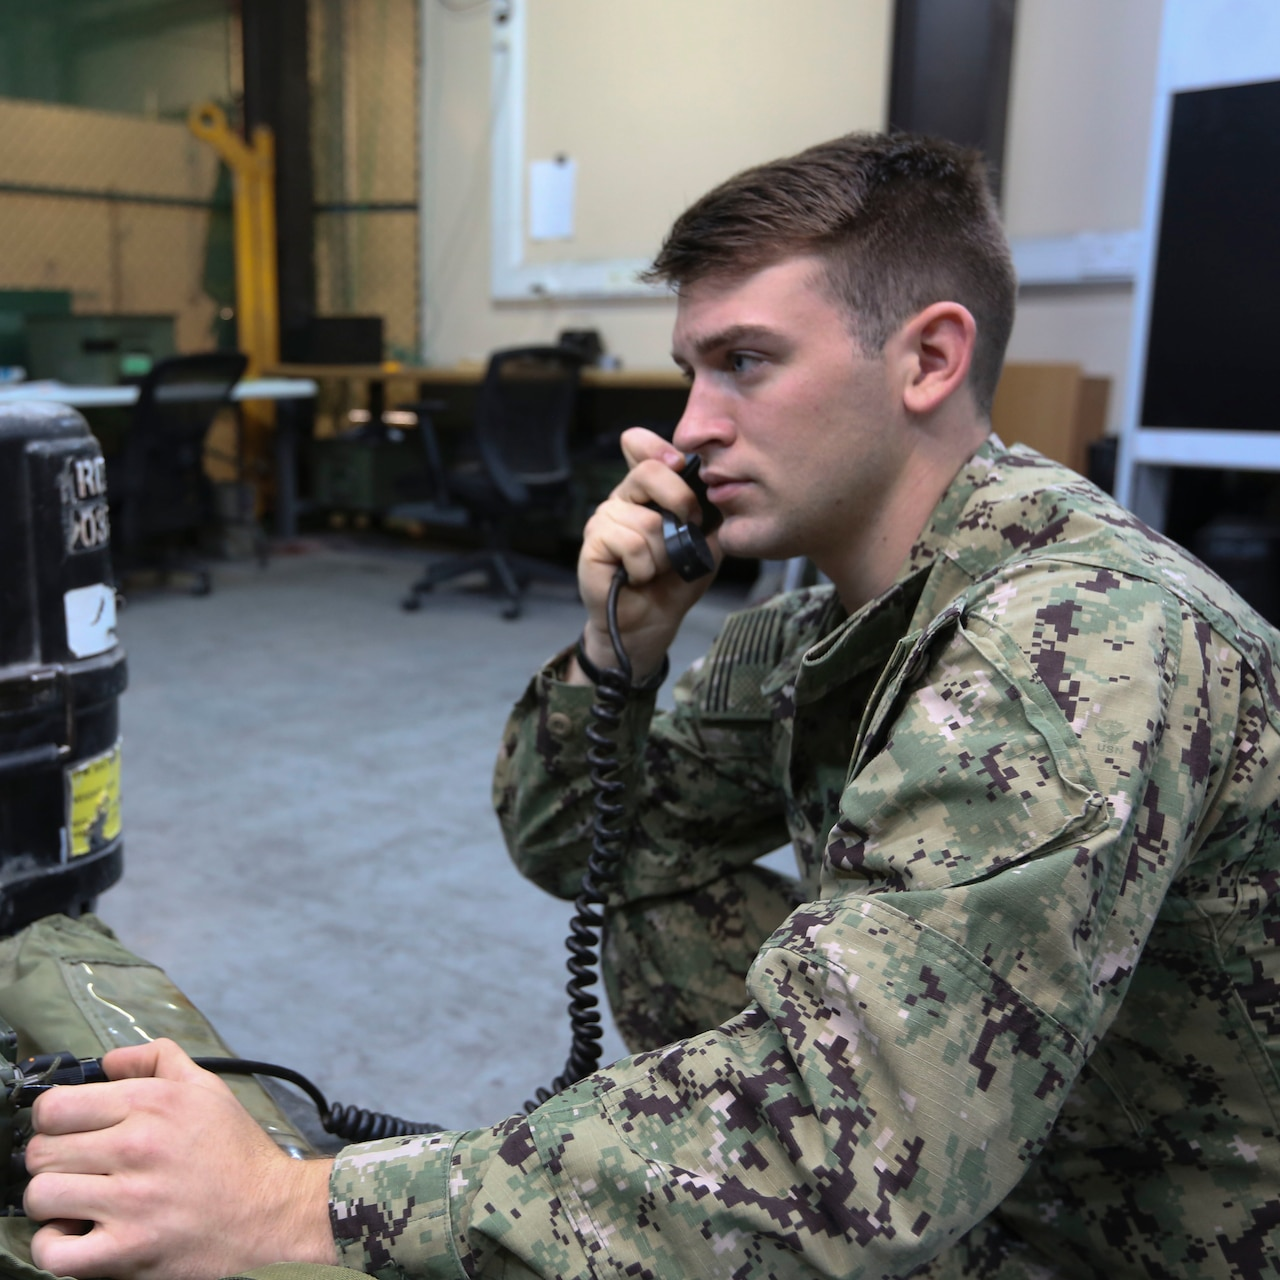 A sailor uses a radio.